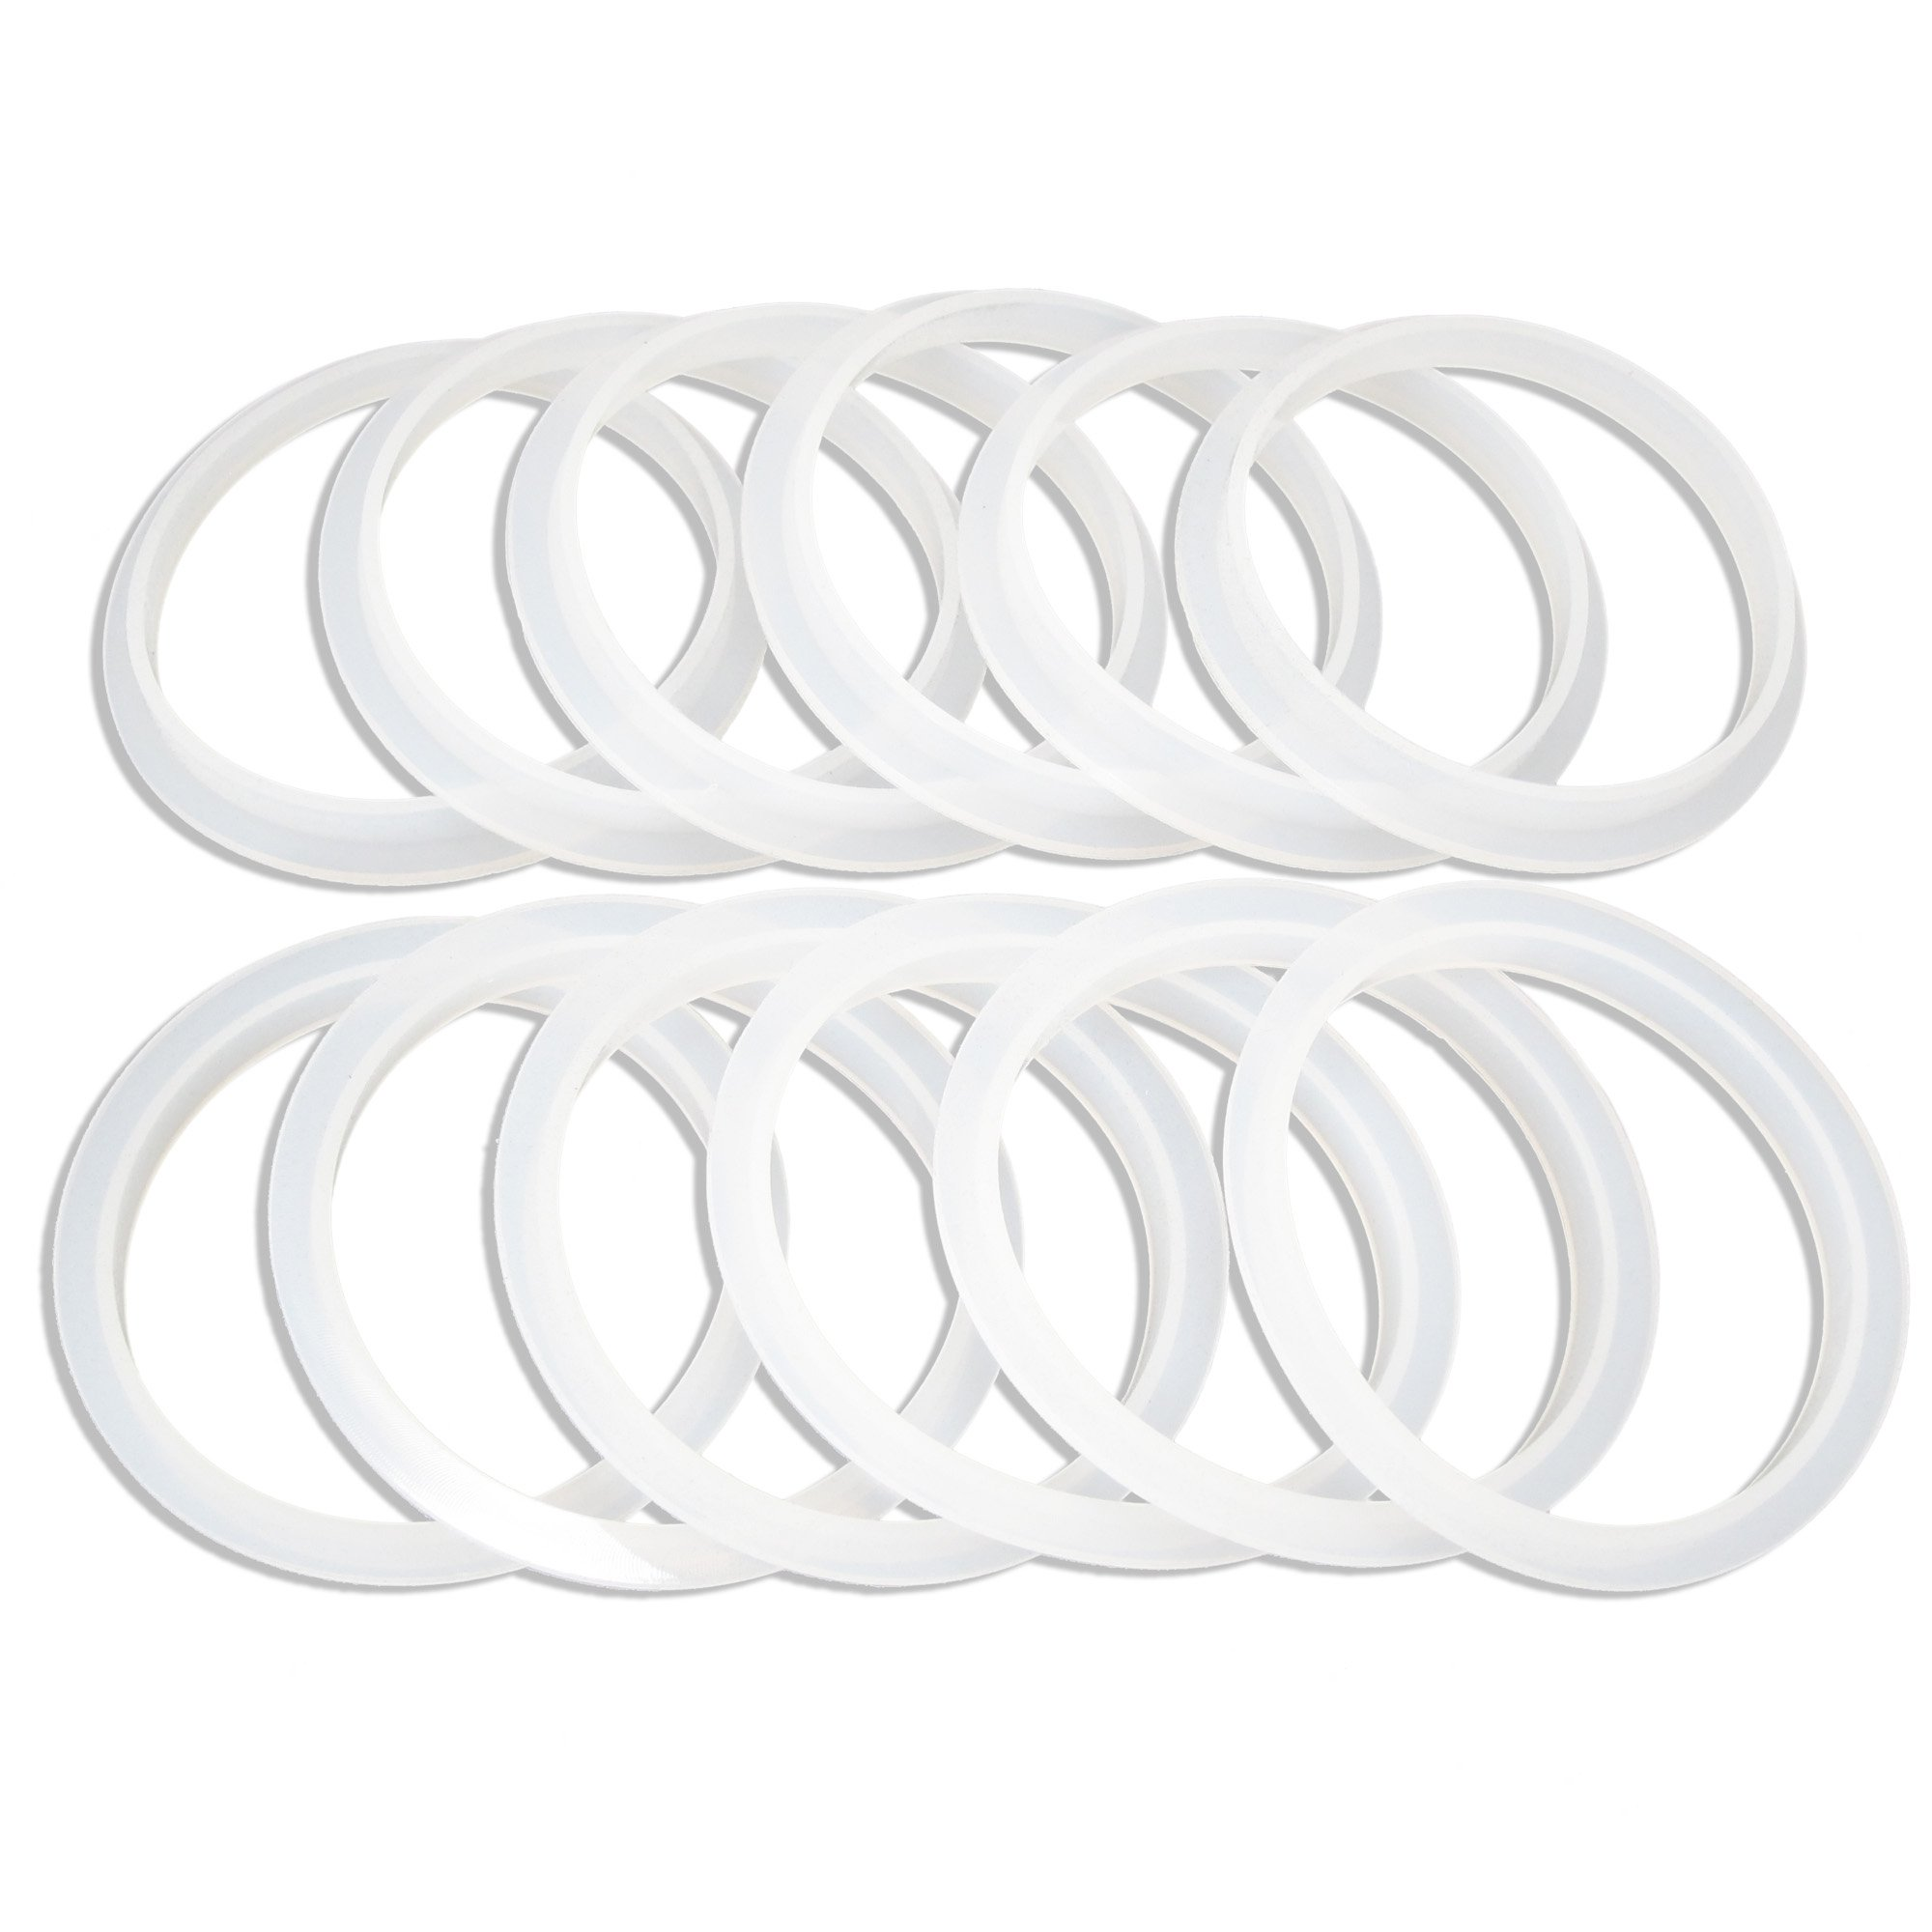 Unique Design, Reusable Silicone Seals for use with Wide Mouth Mason Jars with Plastic Lids, Seal Sits on Rim of Jar Not Inside Lid, Gaskets fit Ball, Kerr And All Wide Mouth Mason Jars - Pack of 12 by County Line Kitchen